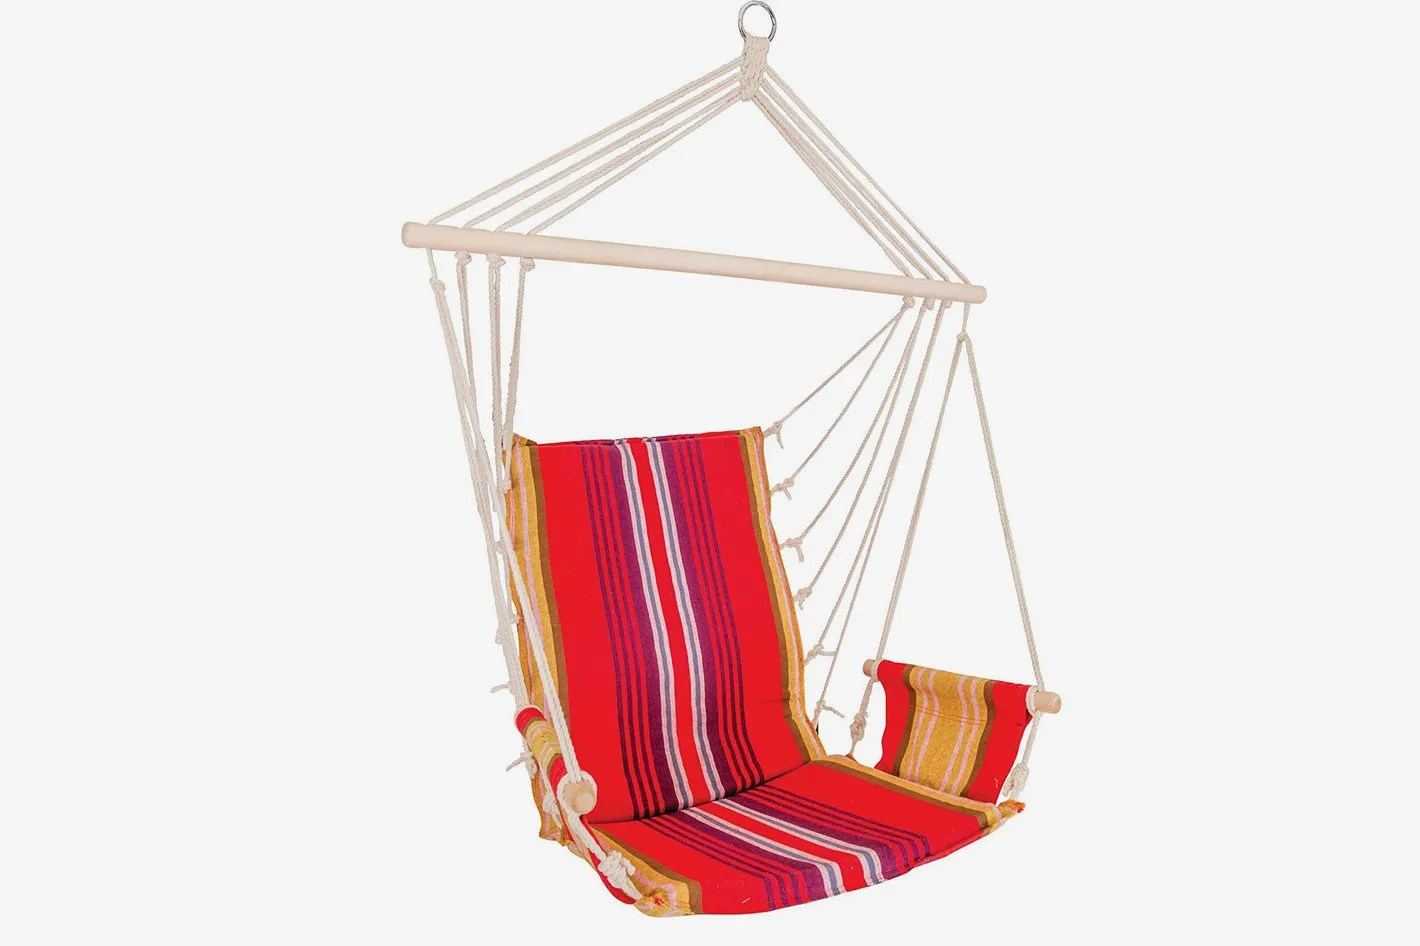 rope chair swing wayfair kitchen chairs the 13 best hammock 2018 club fun hanging